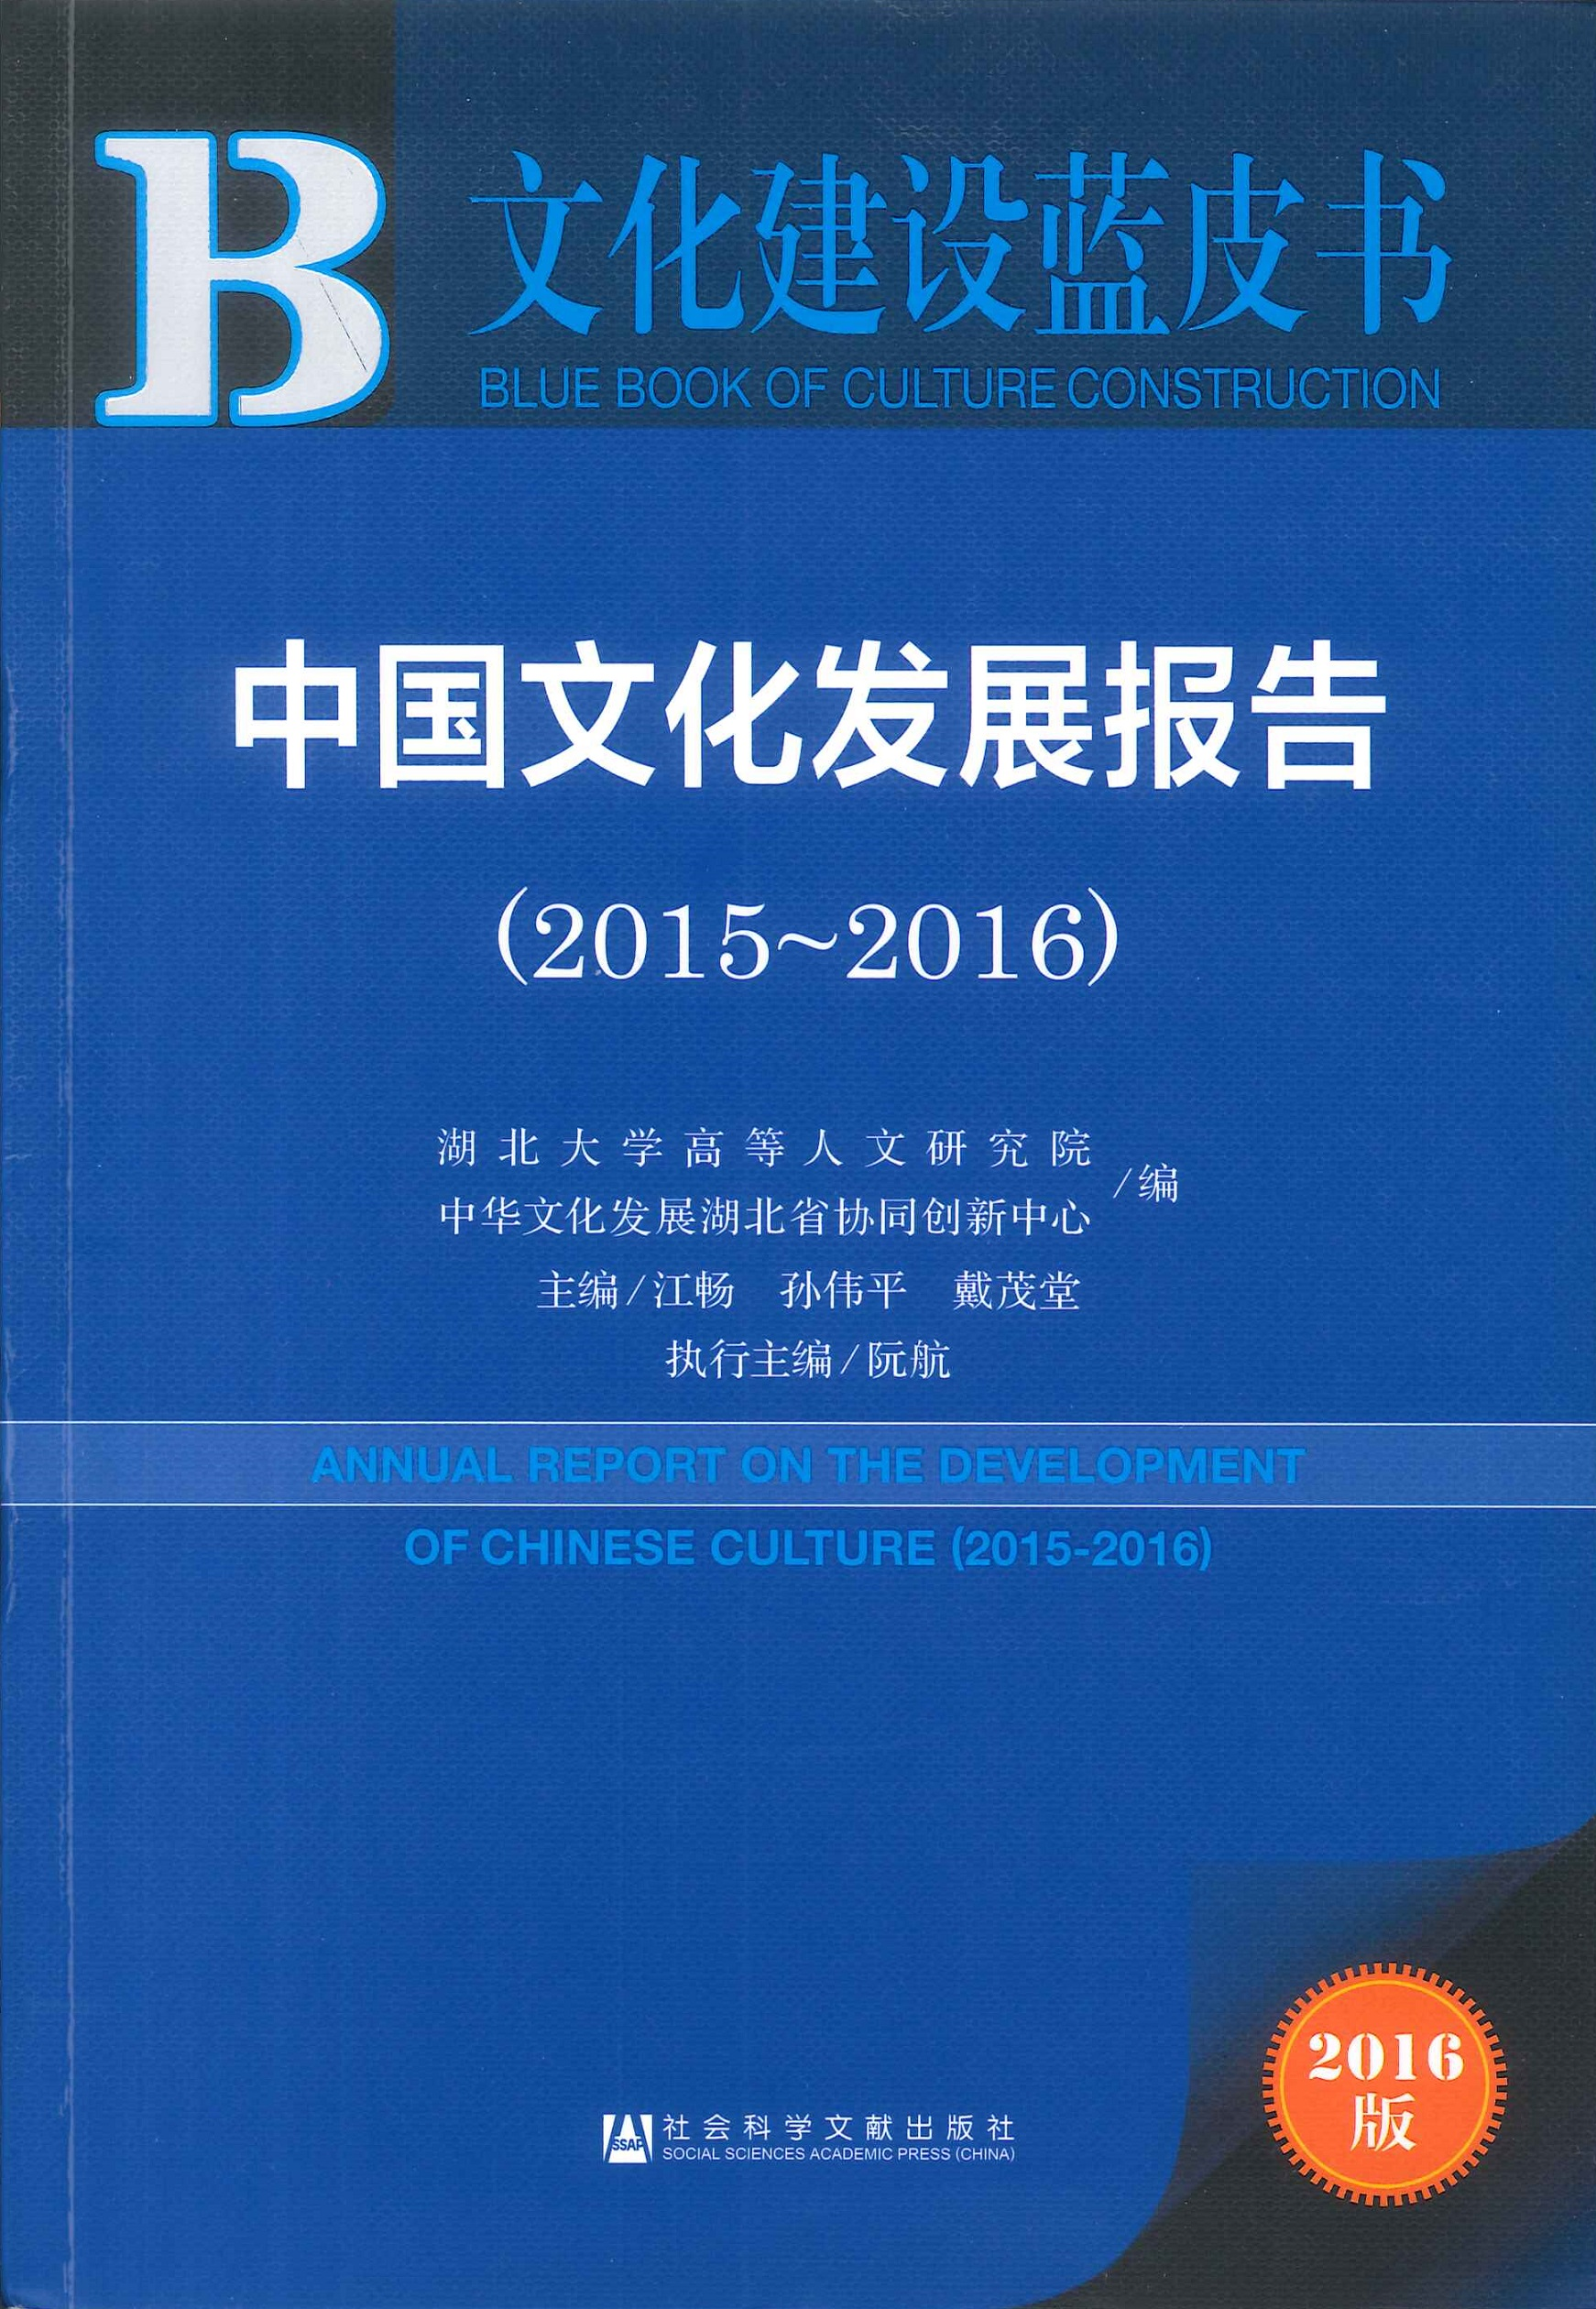 中国文化发展报告=Annual report on the development of Chinese culture